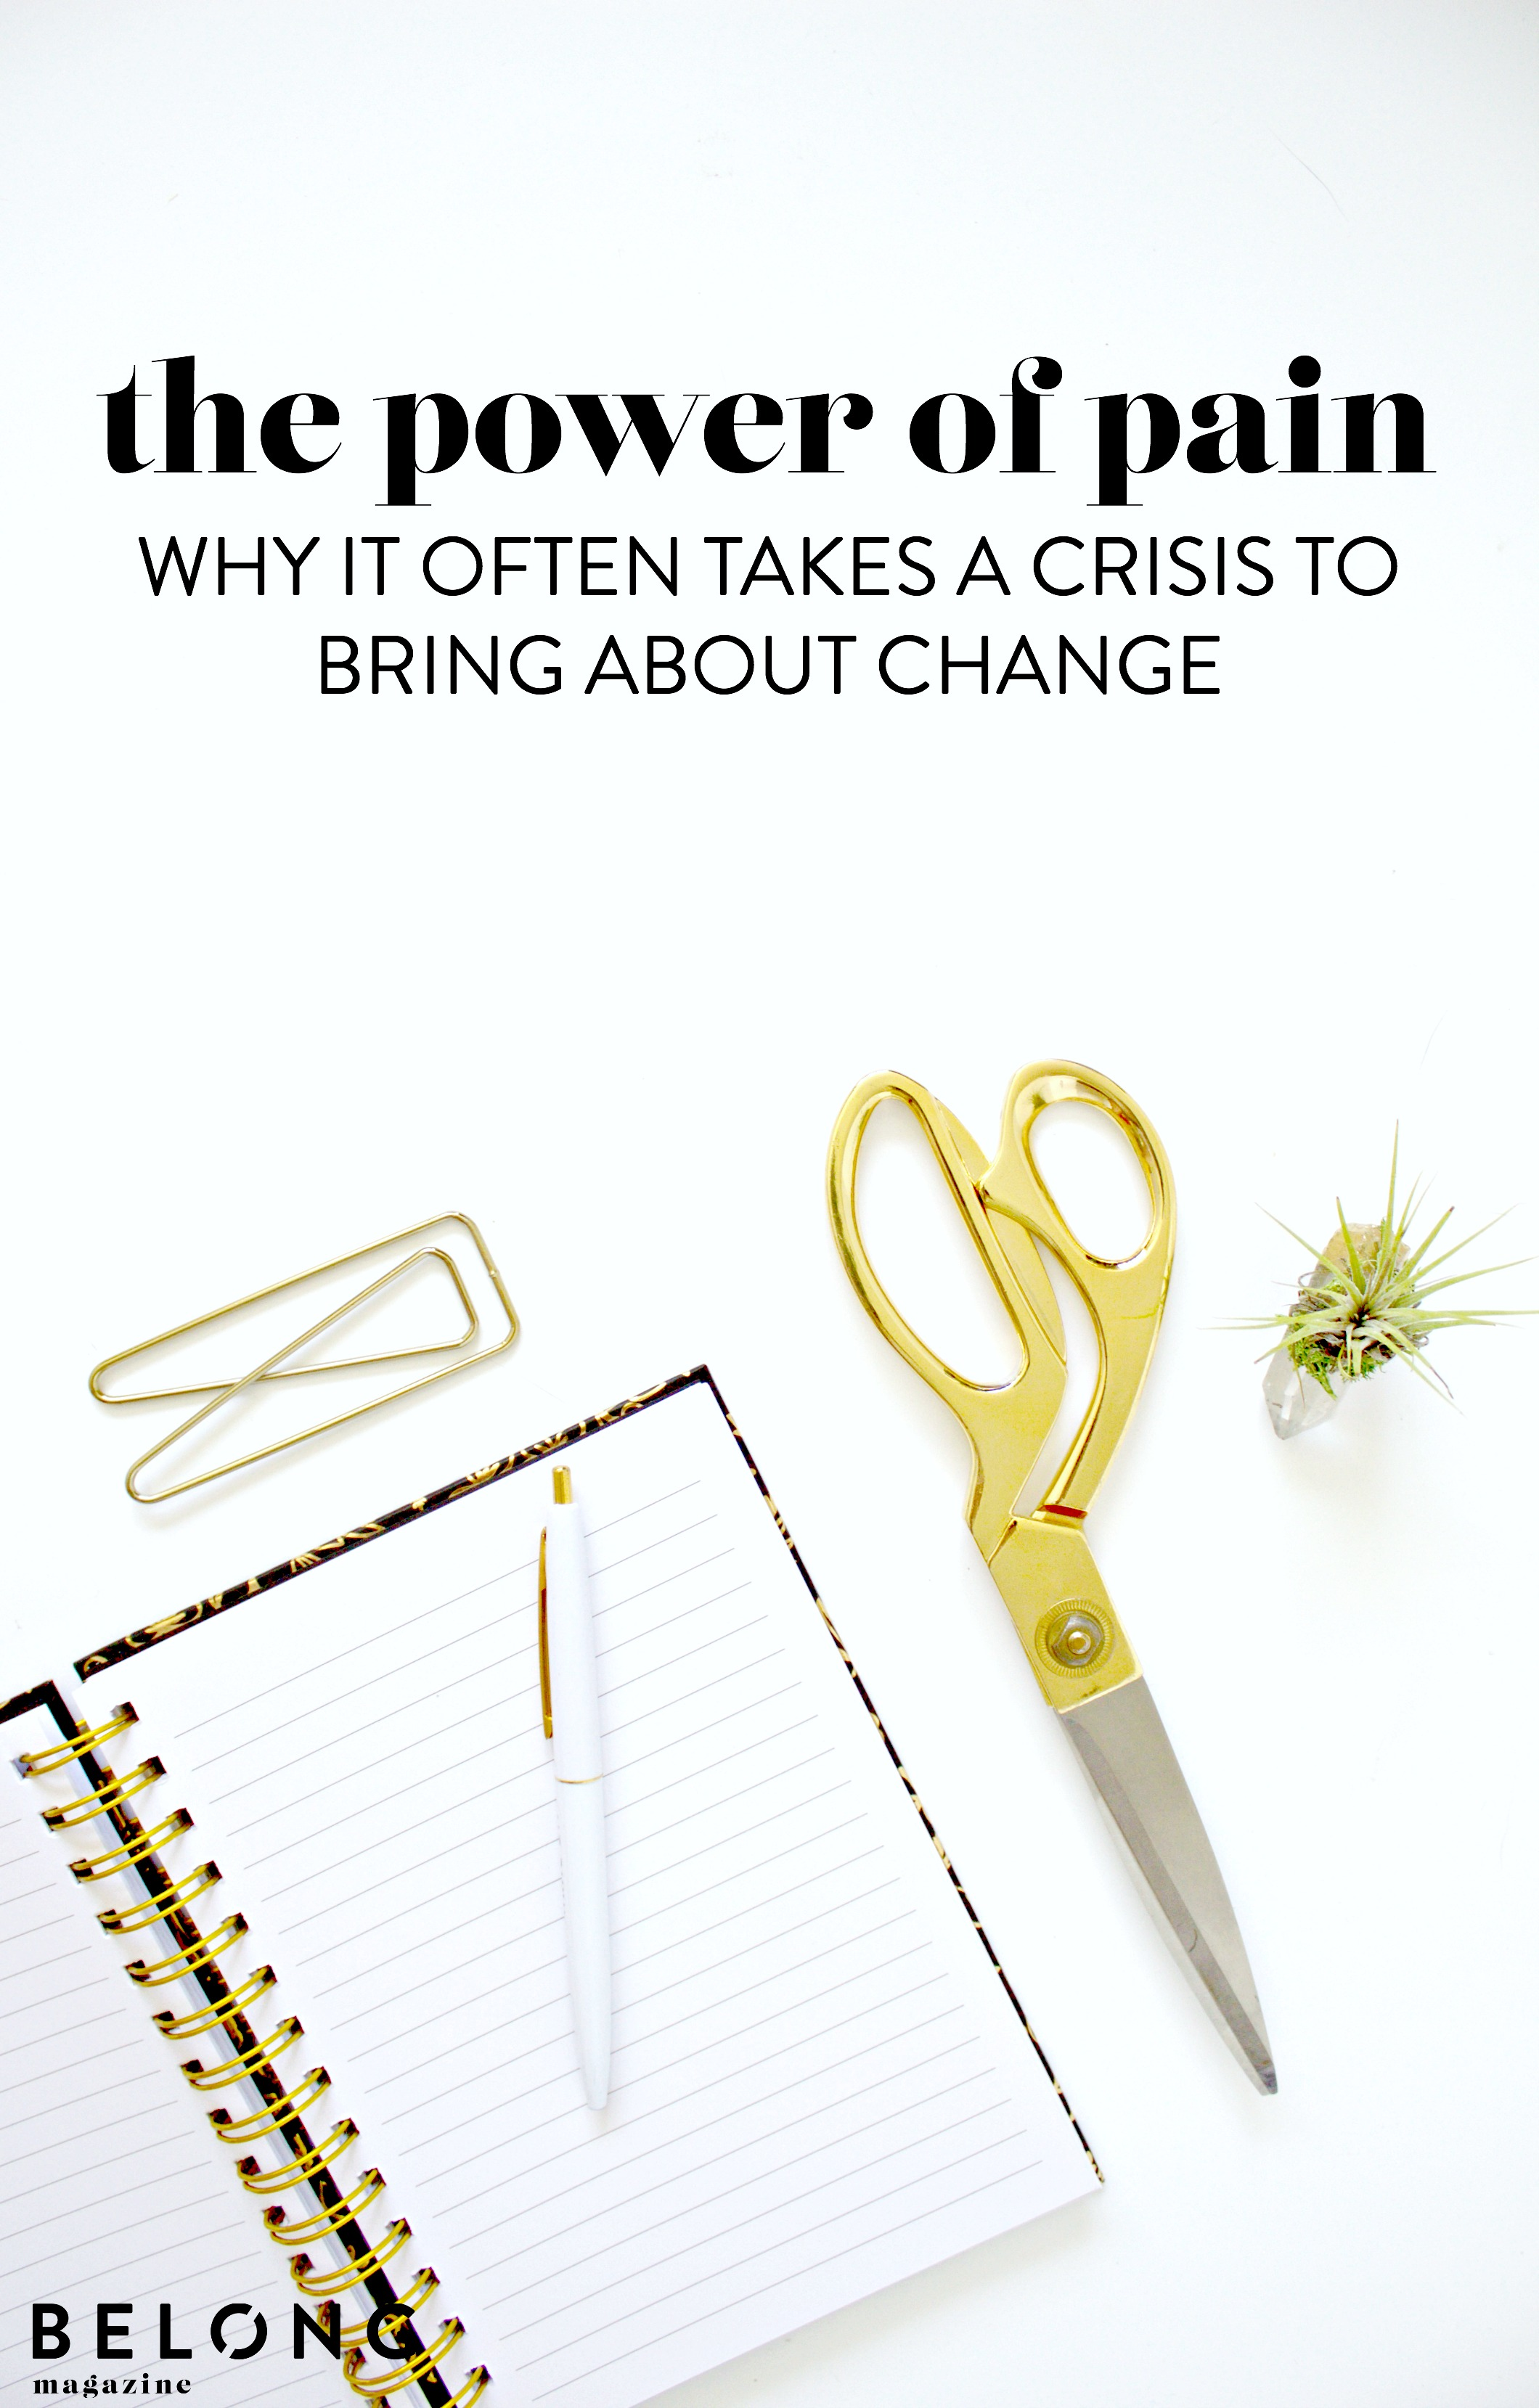 The power of pain and why it often takes a crisis to bring about change with Nicole Johnson, author of Creating Calm in the Center of Crazy as featured on the Belong Magazine blog